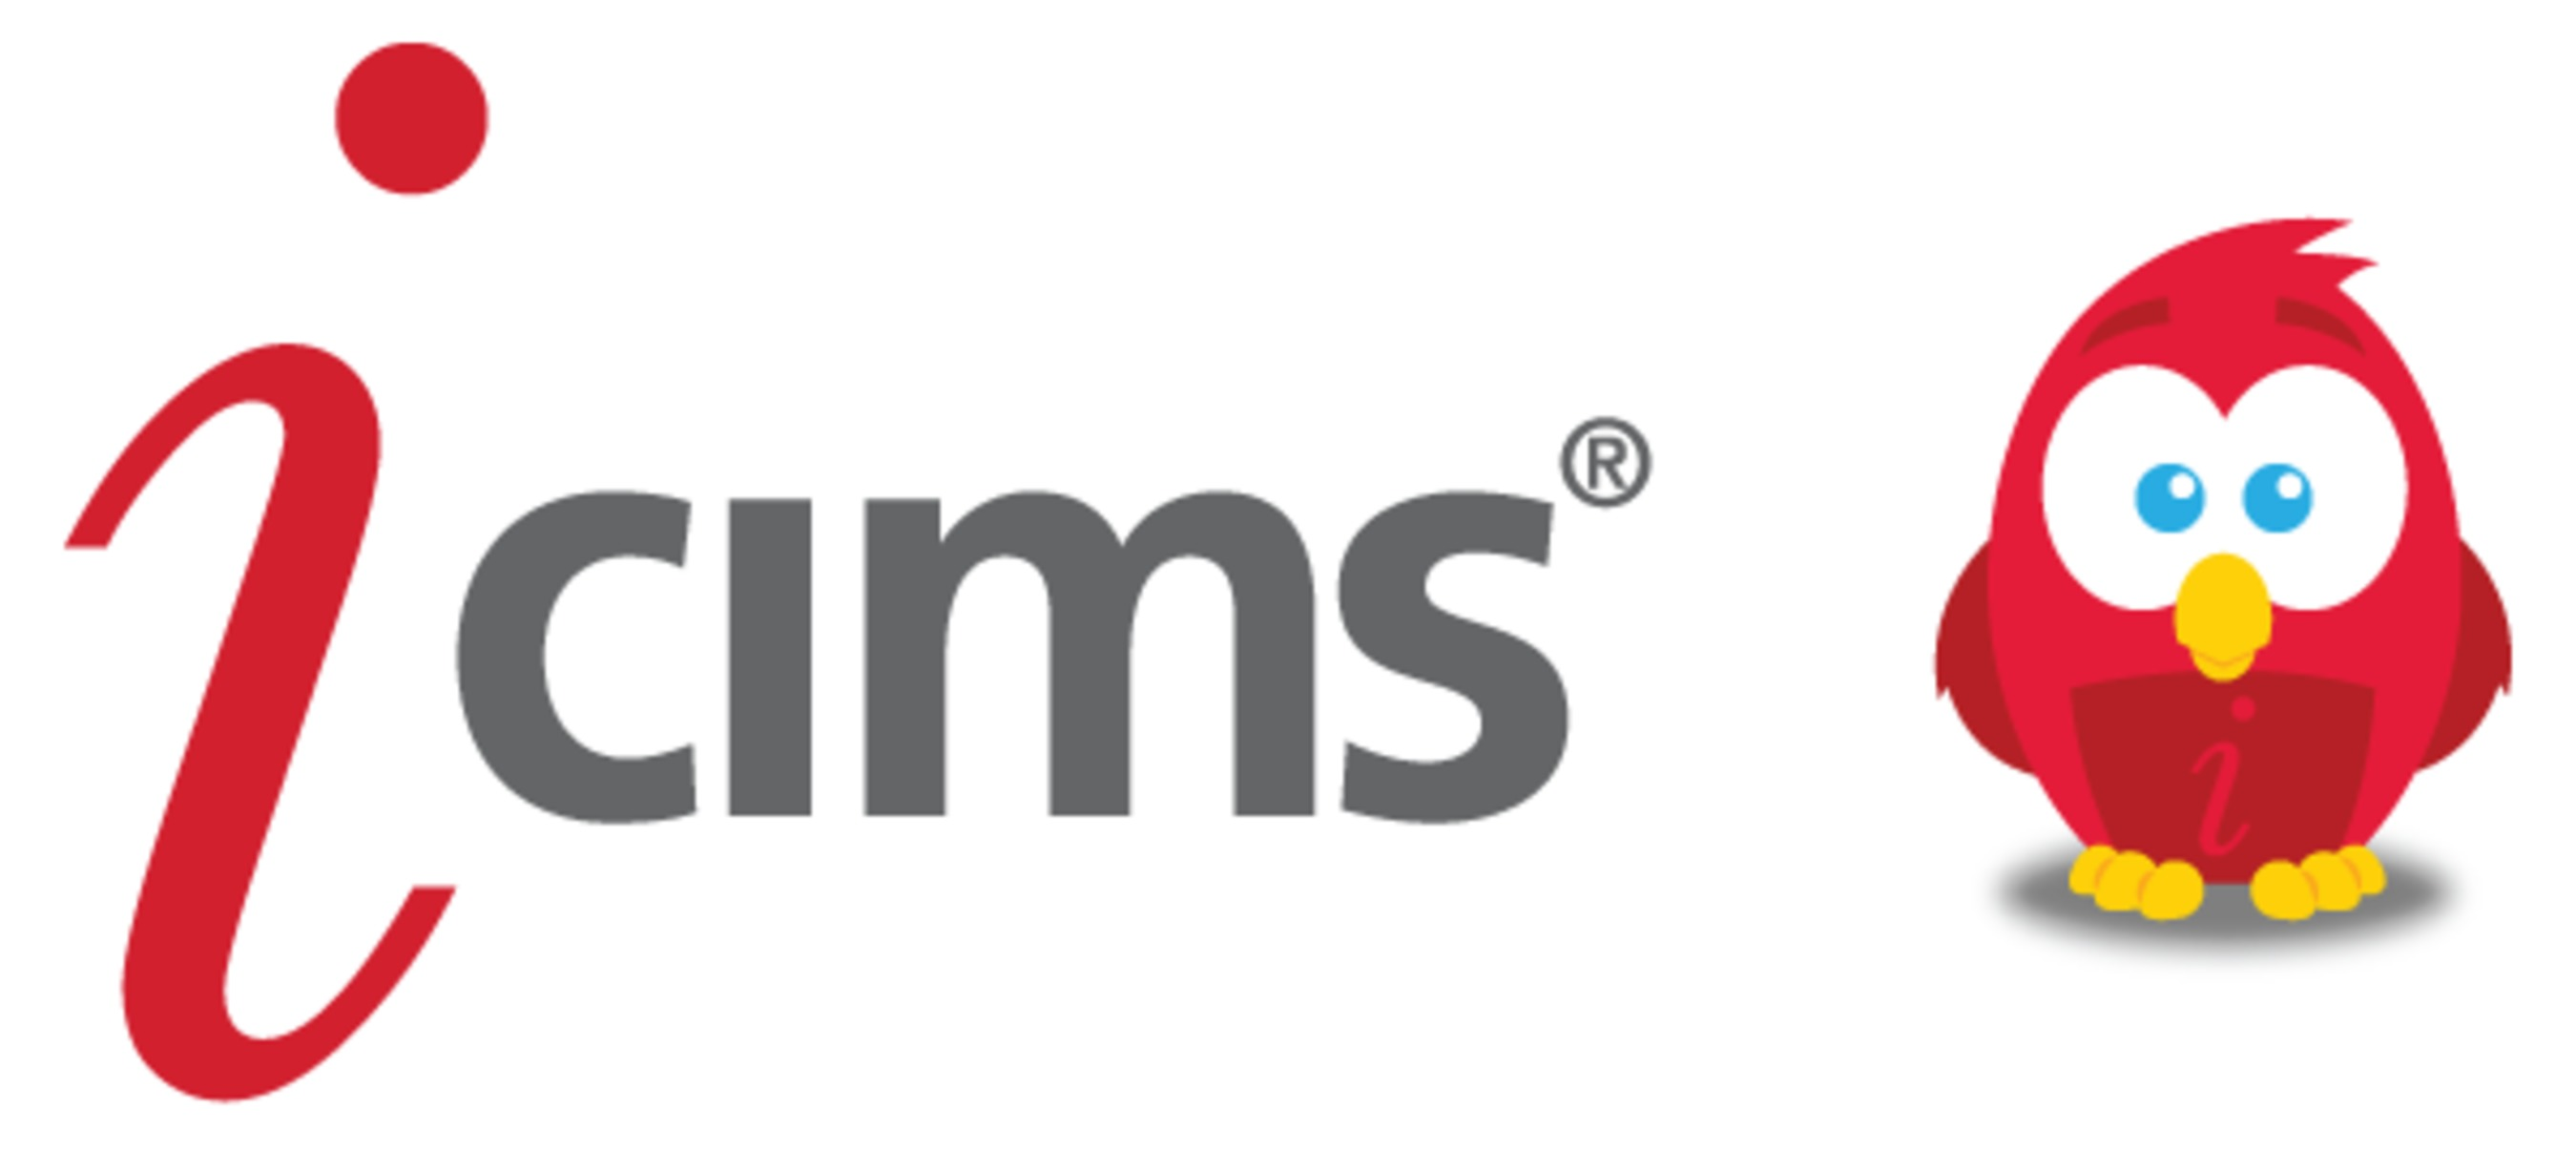 iCIMS, Inc., a leading provider of Software-as-a-Service (SaaS) talent acquisition software solutions for ...